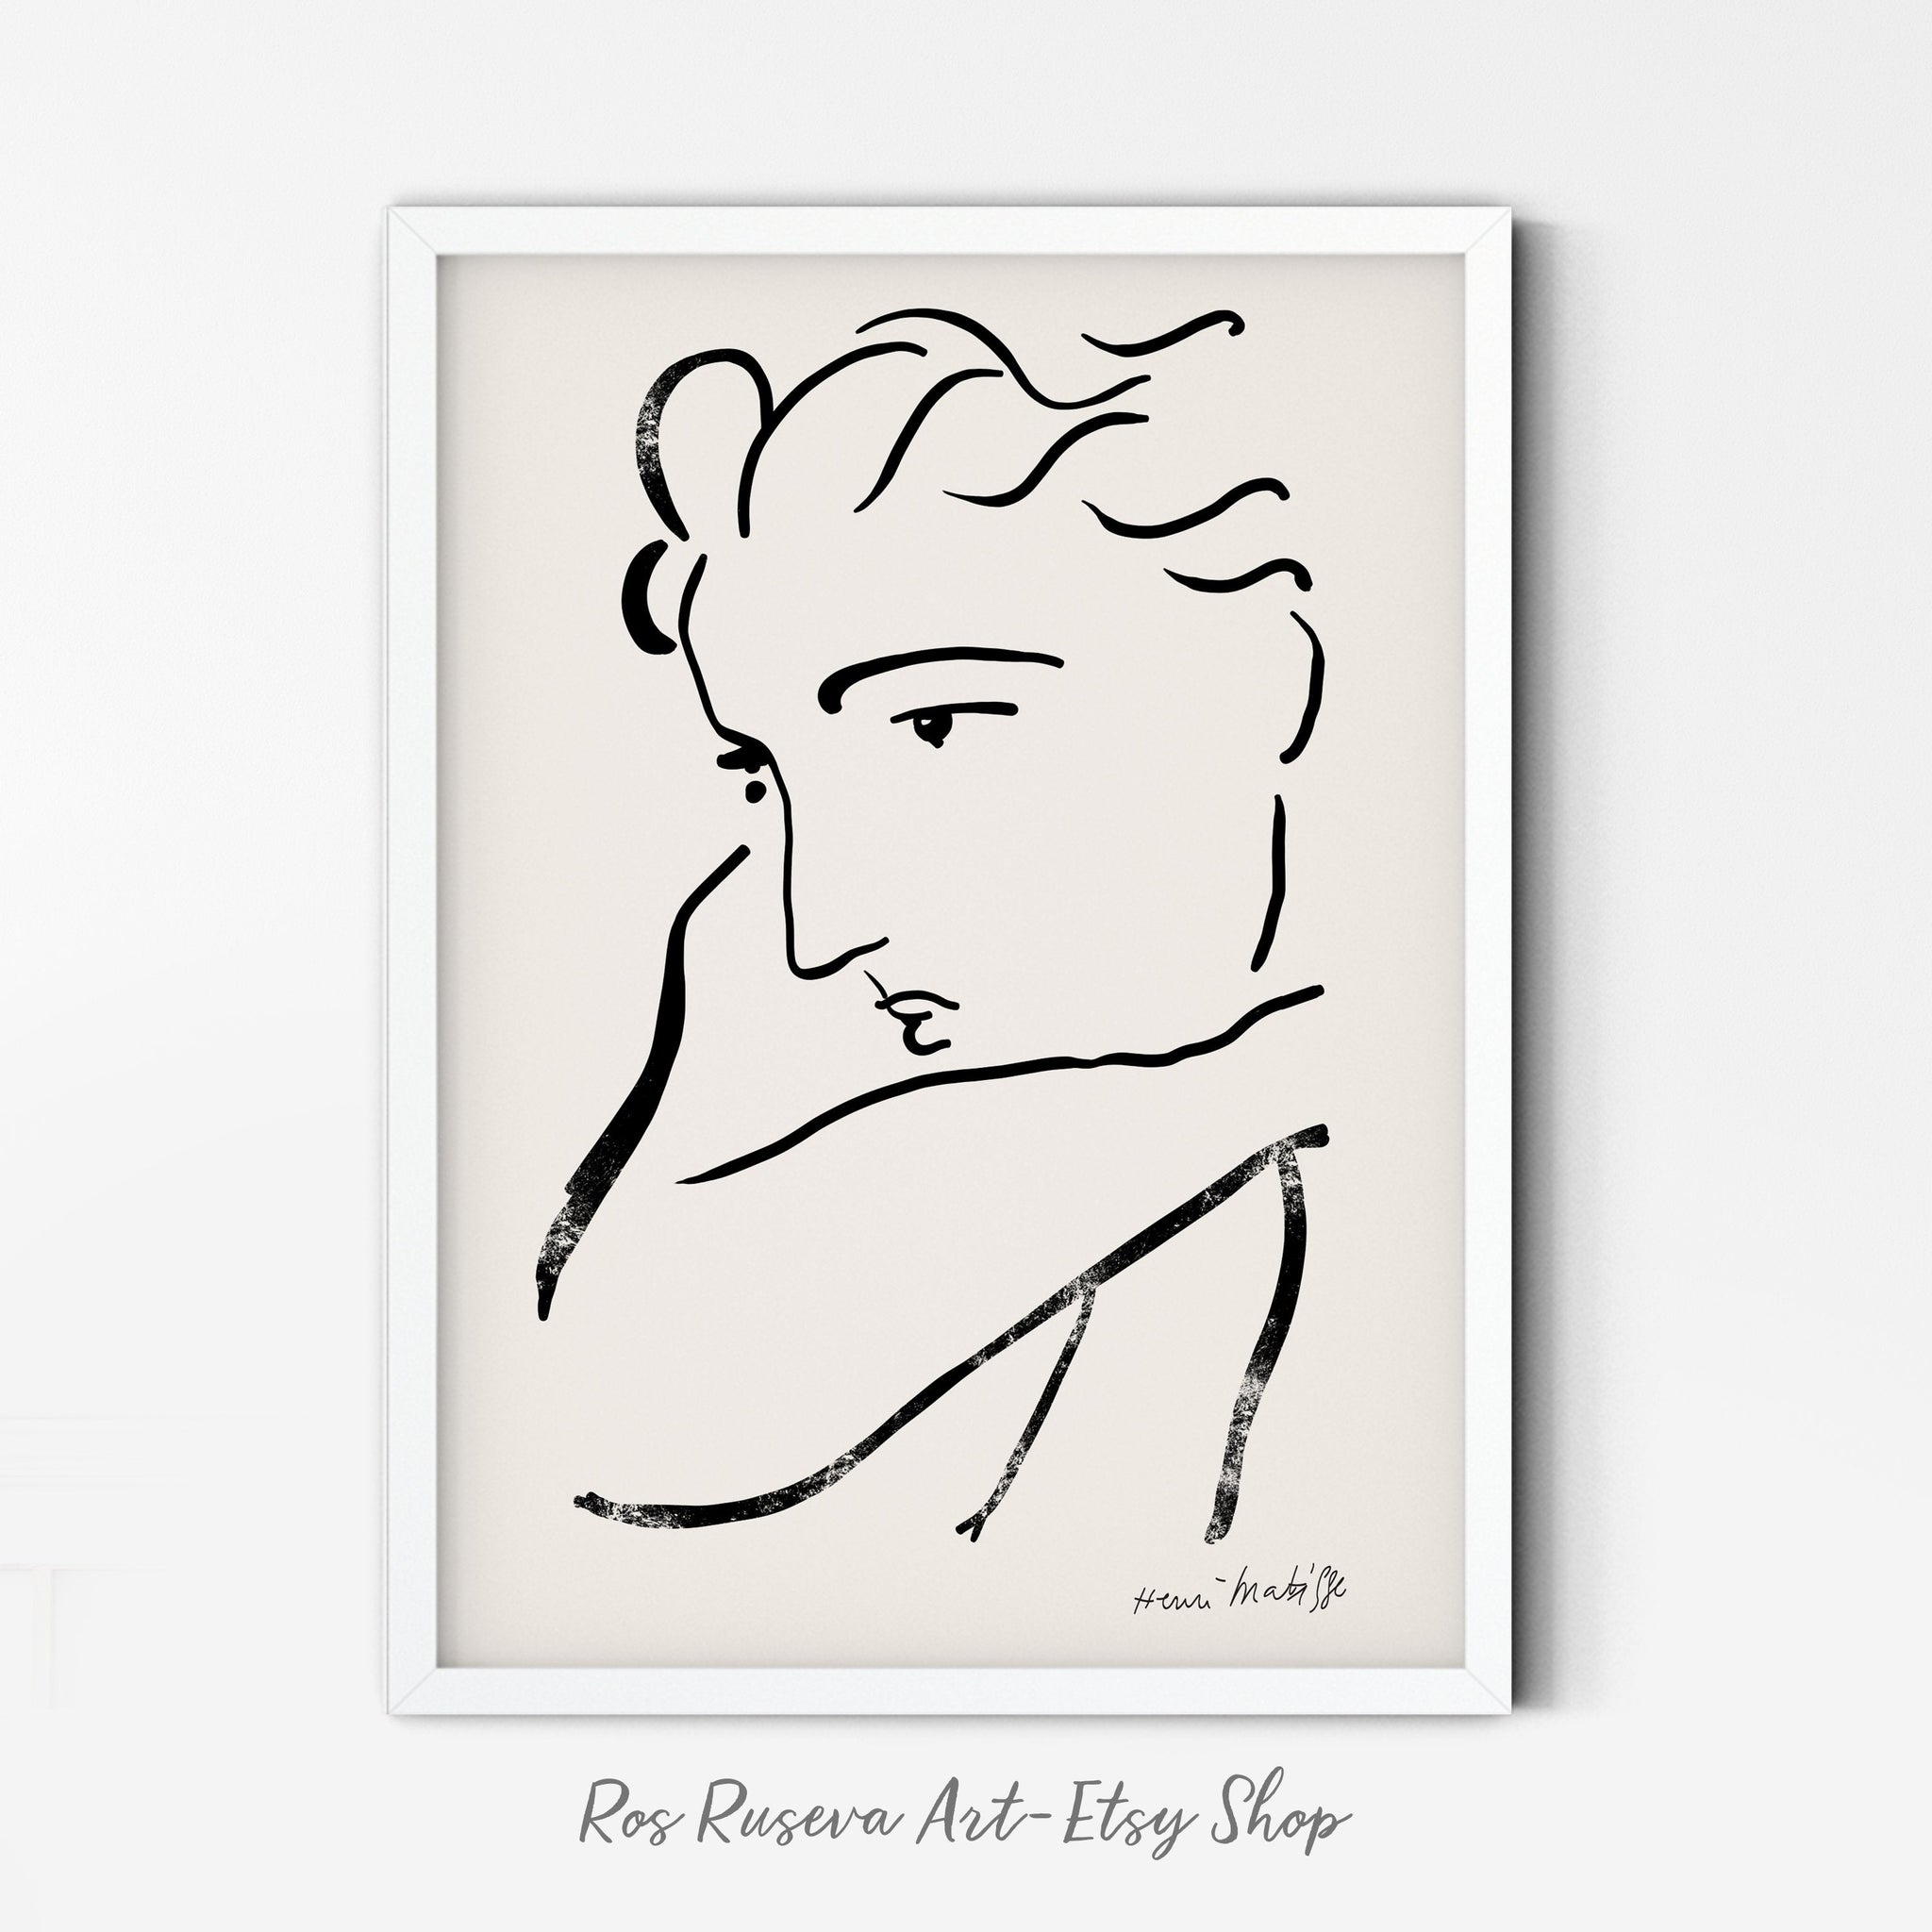 Henri Matisse Print, One Line Drawing, Matisse Art Print, One Line Art, Matisse Wall Art, Matisse Poster, Female Line Art, Abstract Face Art